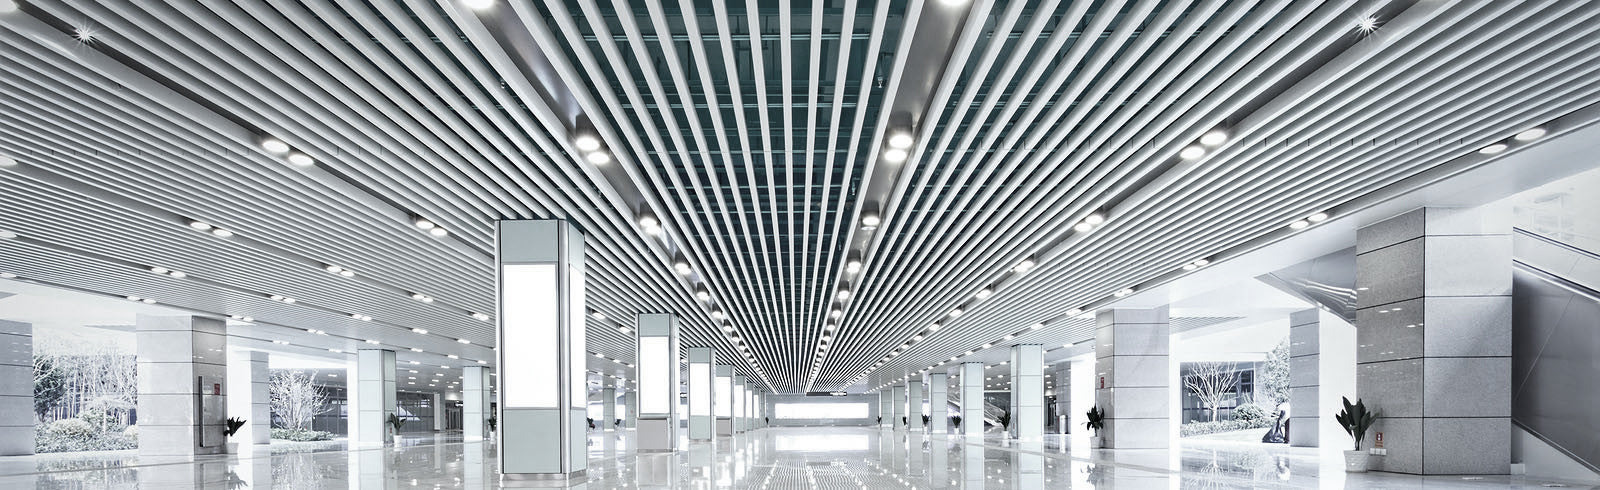 NES Light will help you trim your business operating costs with lighting designs that keep energy bills as low as possible. We will make sure your specialty ...  sc 1 st  NES Light & Commercial Lighting u2013 neslight